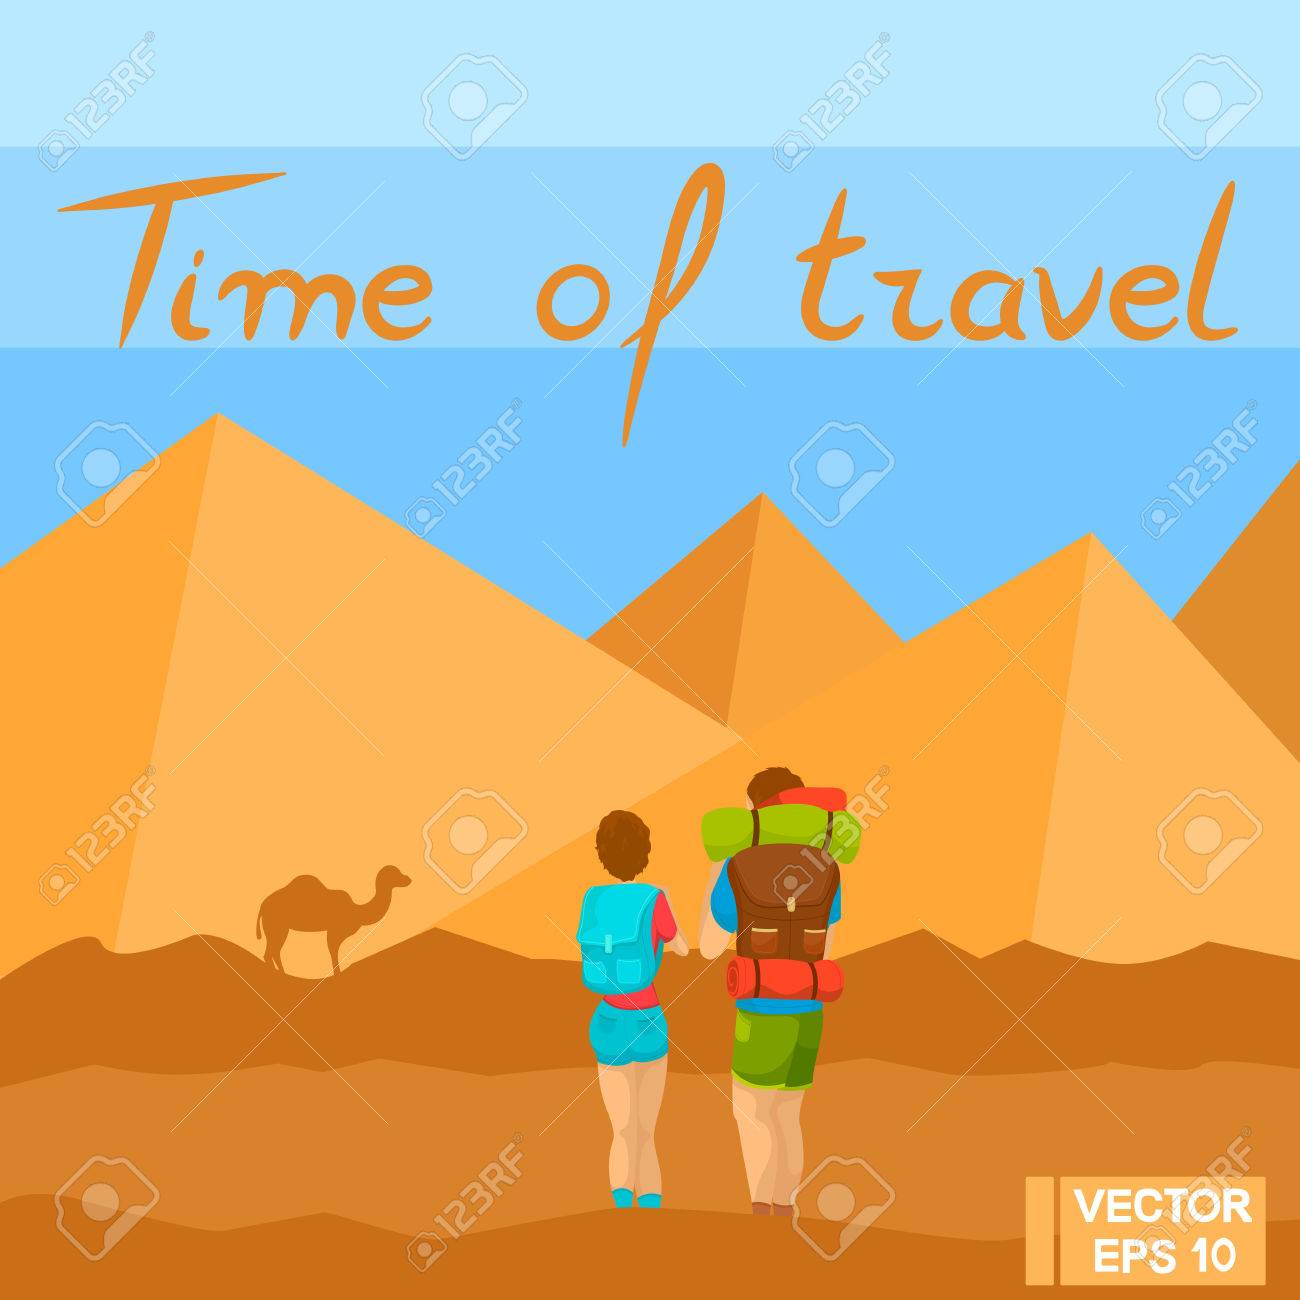 Image of: Portrait Tourists In The Desert Travelers Look At The Pyramids Travel To Hot Countries 123rfcom Vector Illustration Tourists In The Desert Travelers Look At